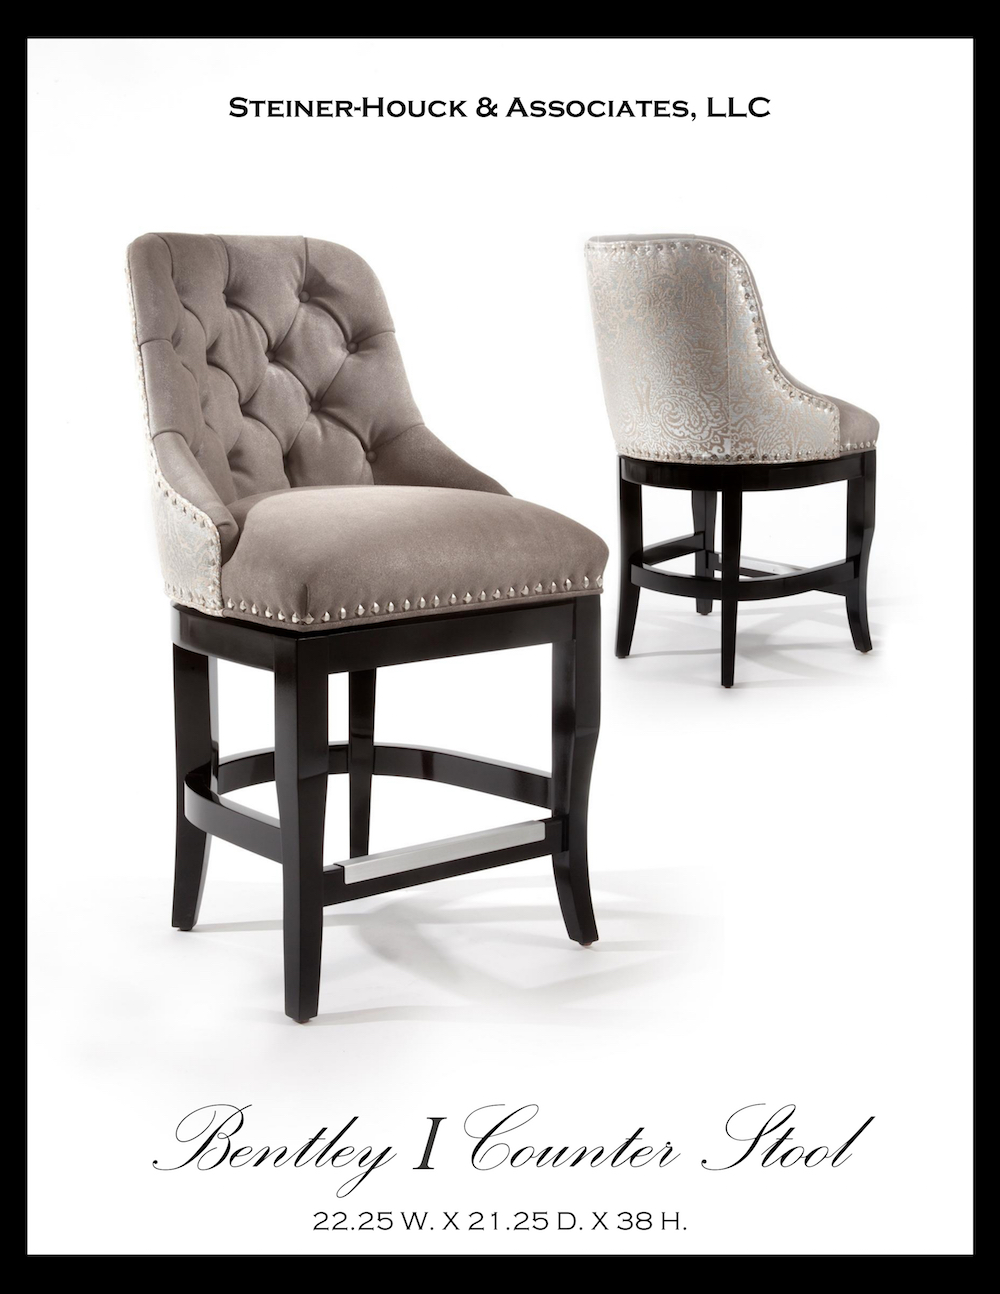 Interior Design Lancaster Pa Gallery Private Upholstery Collection 2 Bentley I Counter Stool Page